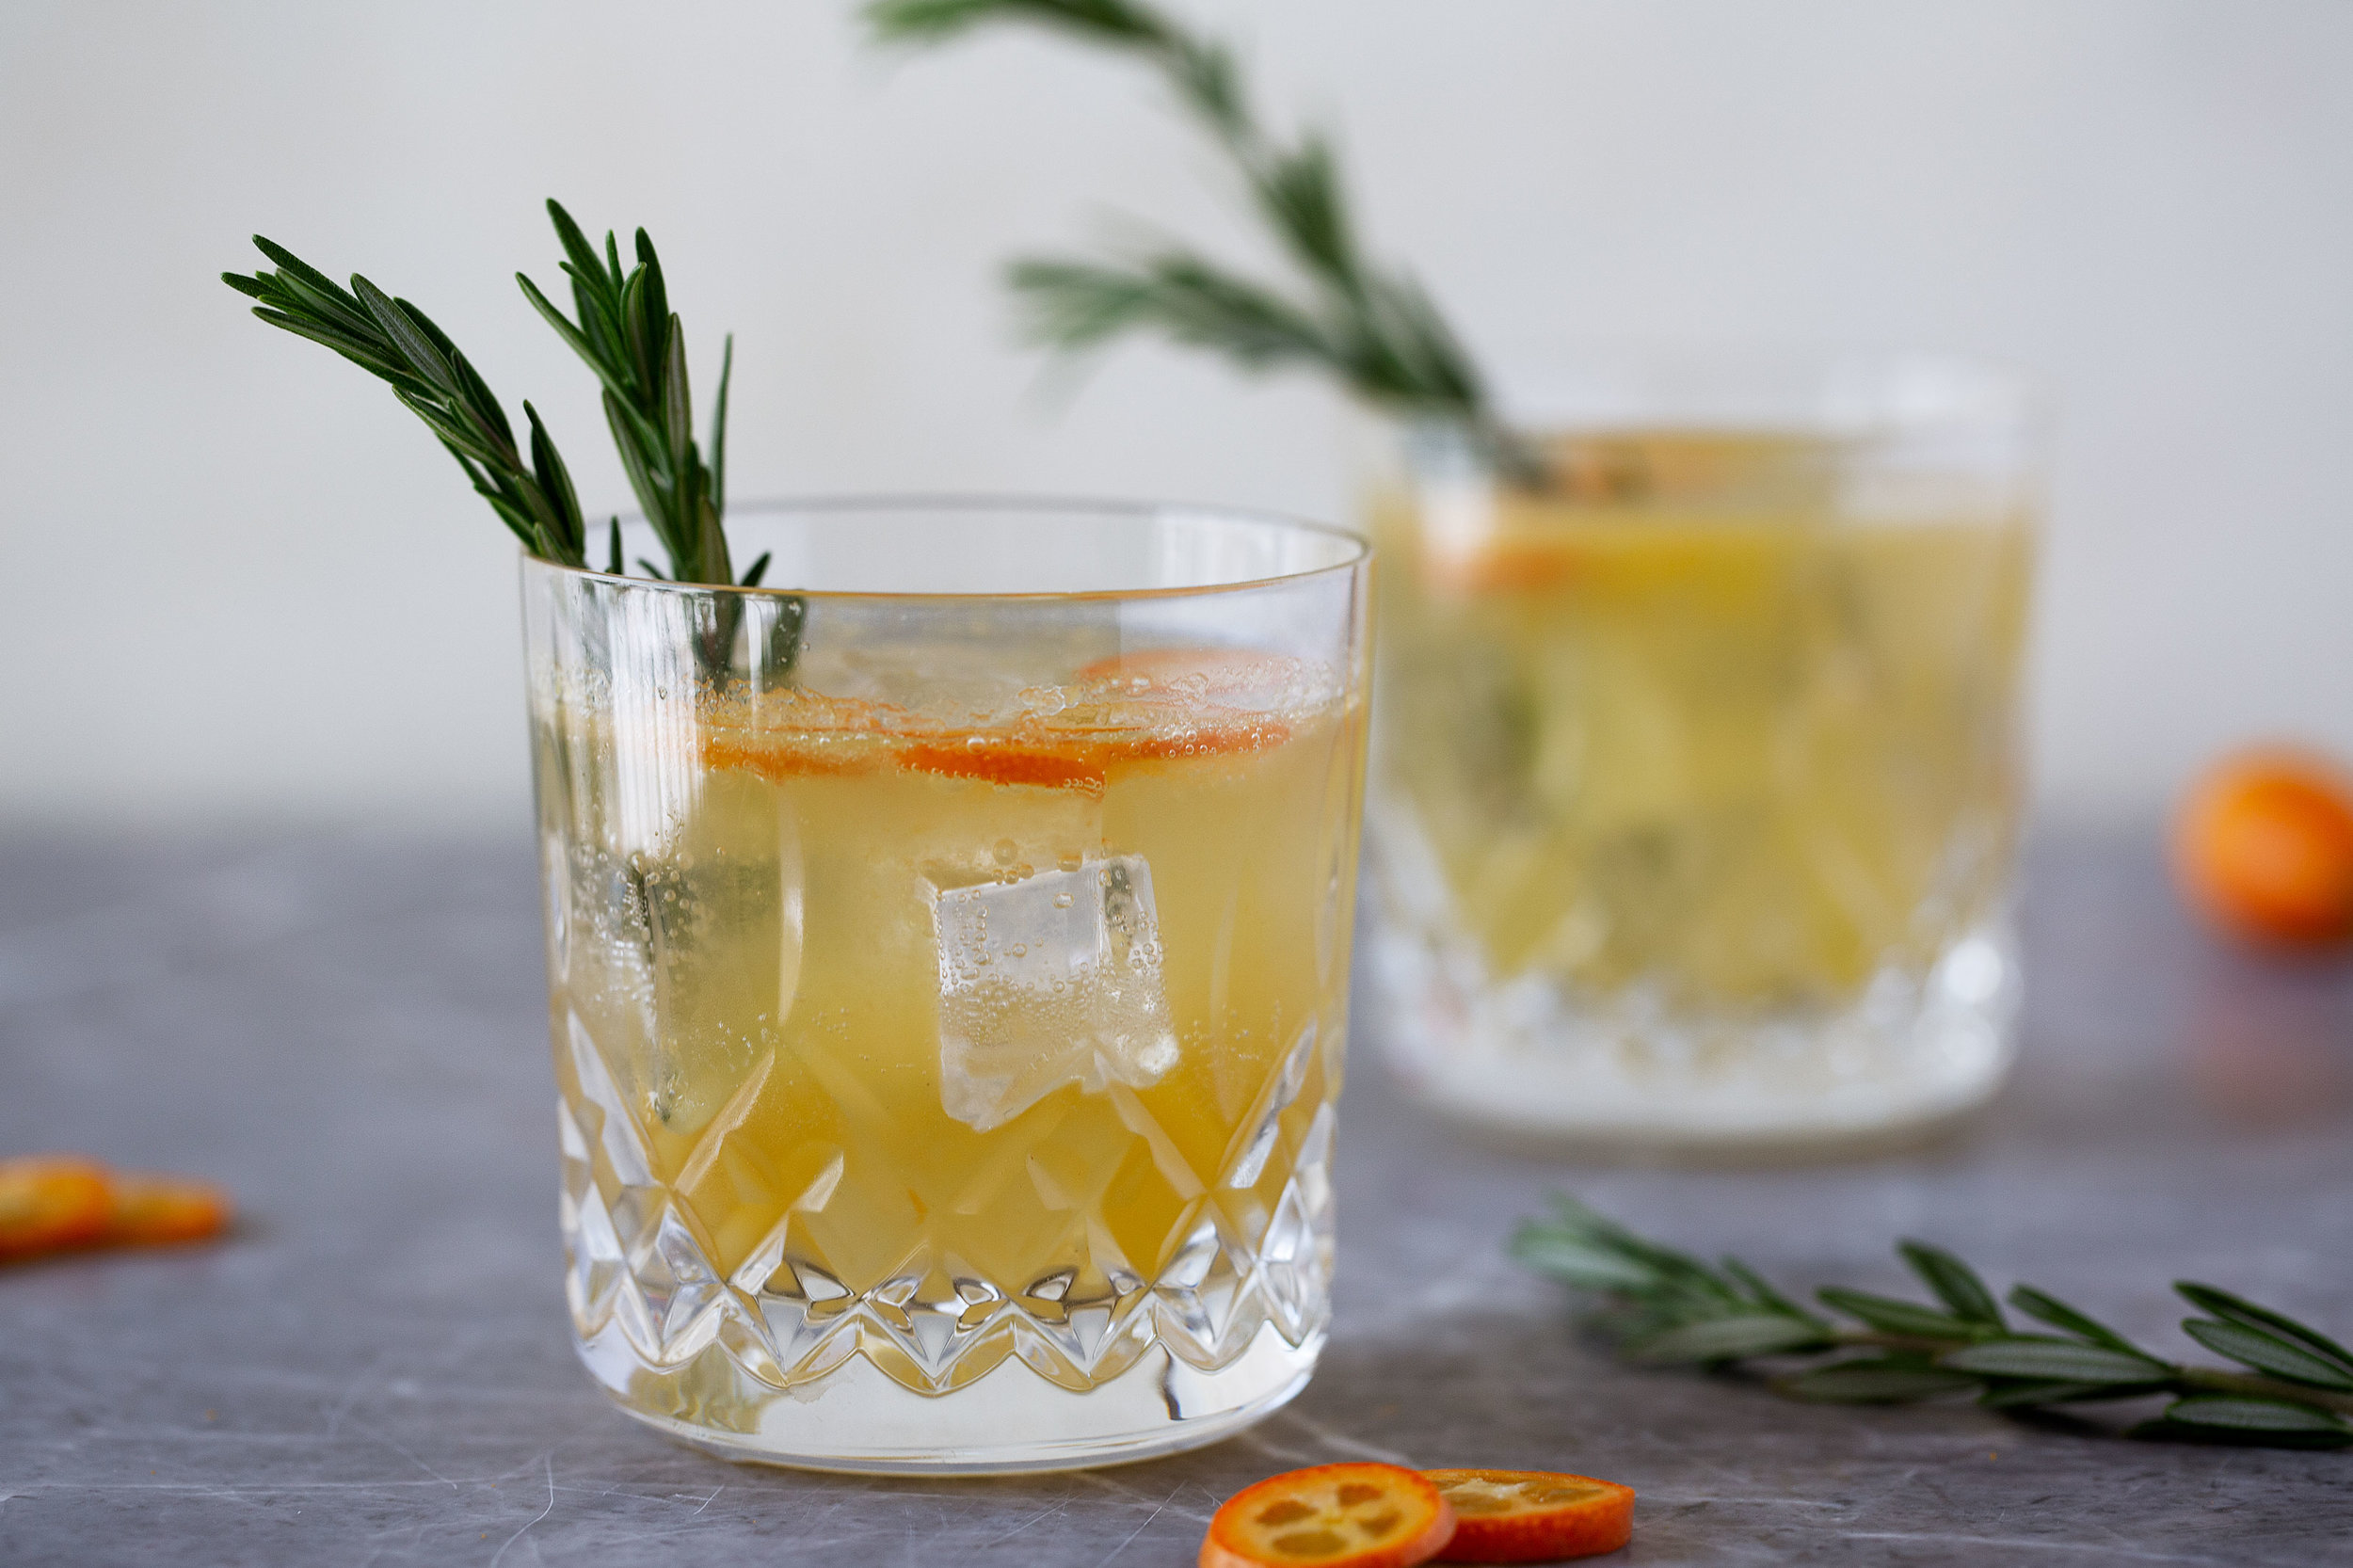 rosemary kumquat gin fizz cocktail recipe from cooking with cocktail rings happy hour